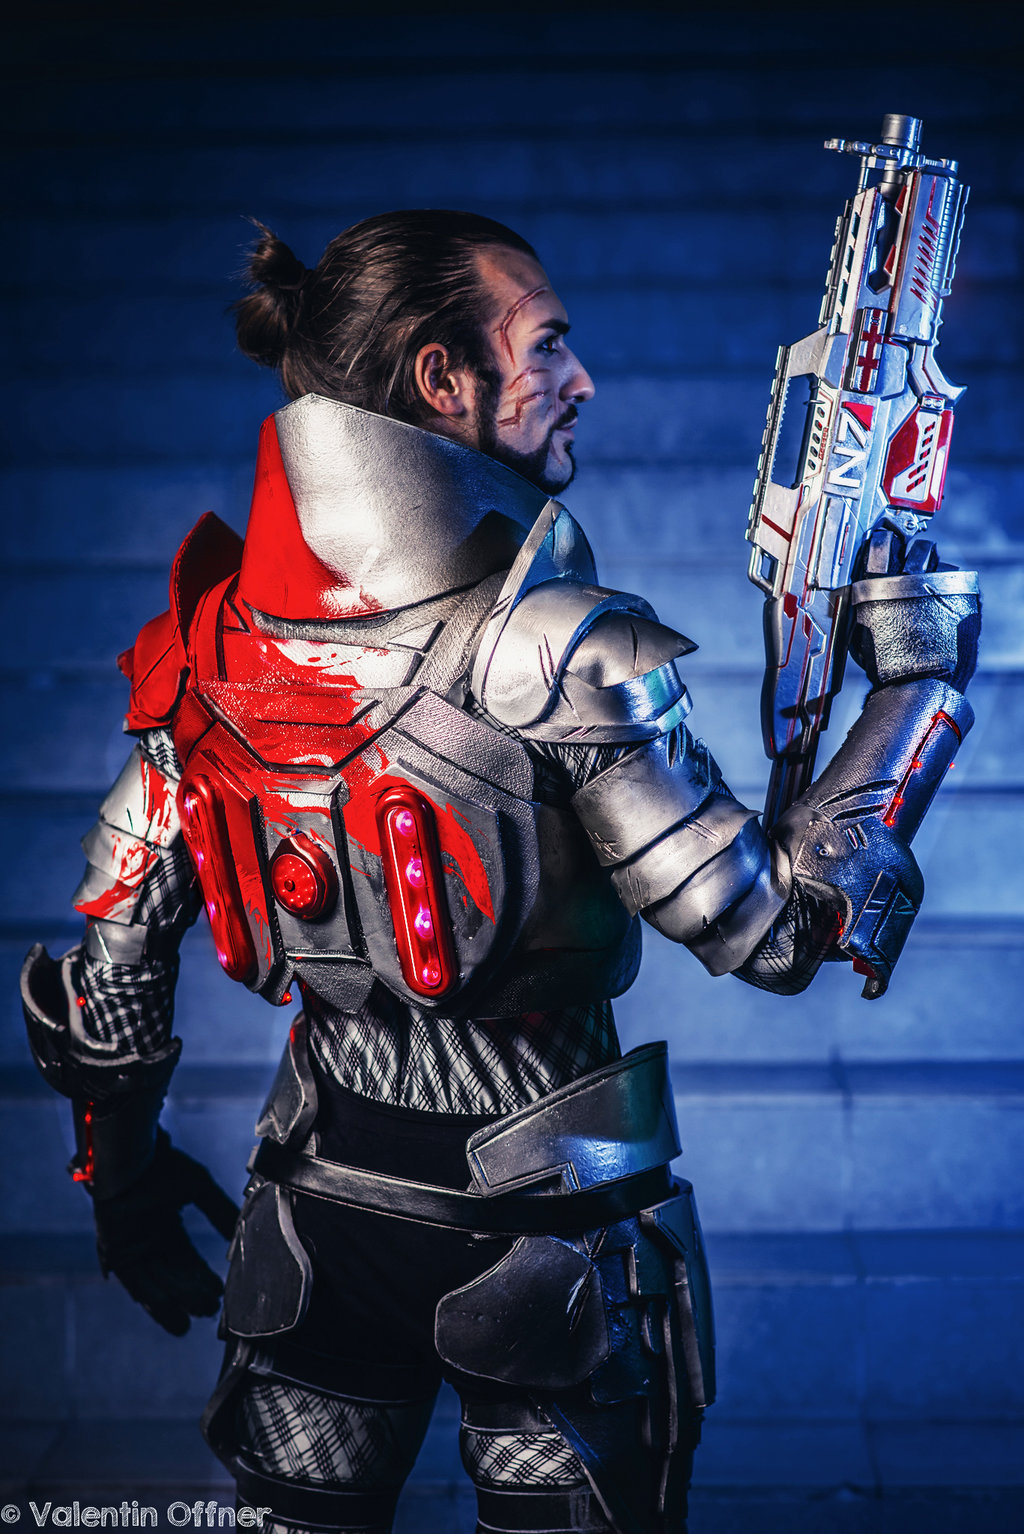 Mass Effect Blood Dragon Armor Cosplay By Leon Chiro Cosplay Geektyrant Once downloaded, the mass effect 2 version of dragon blood armor will be available for download through that game's menu. mass effect blood dragon armor cosplay